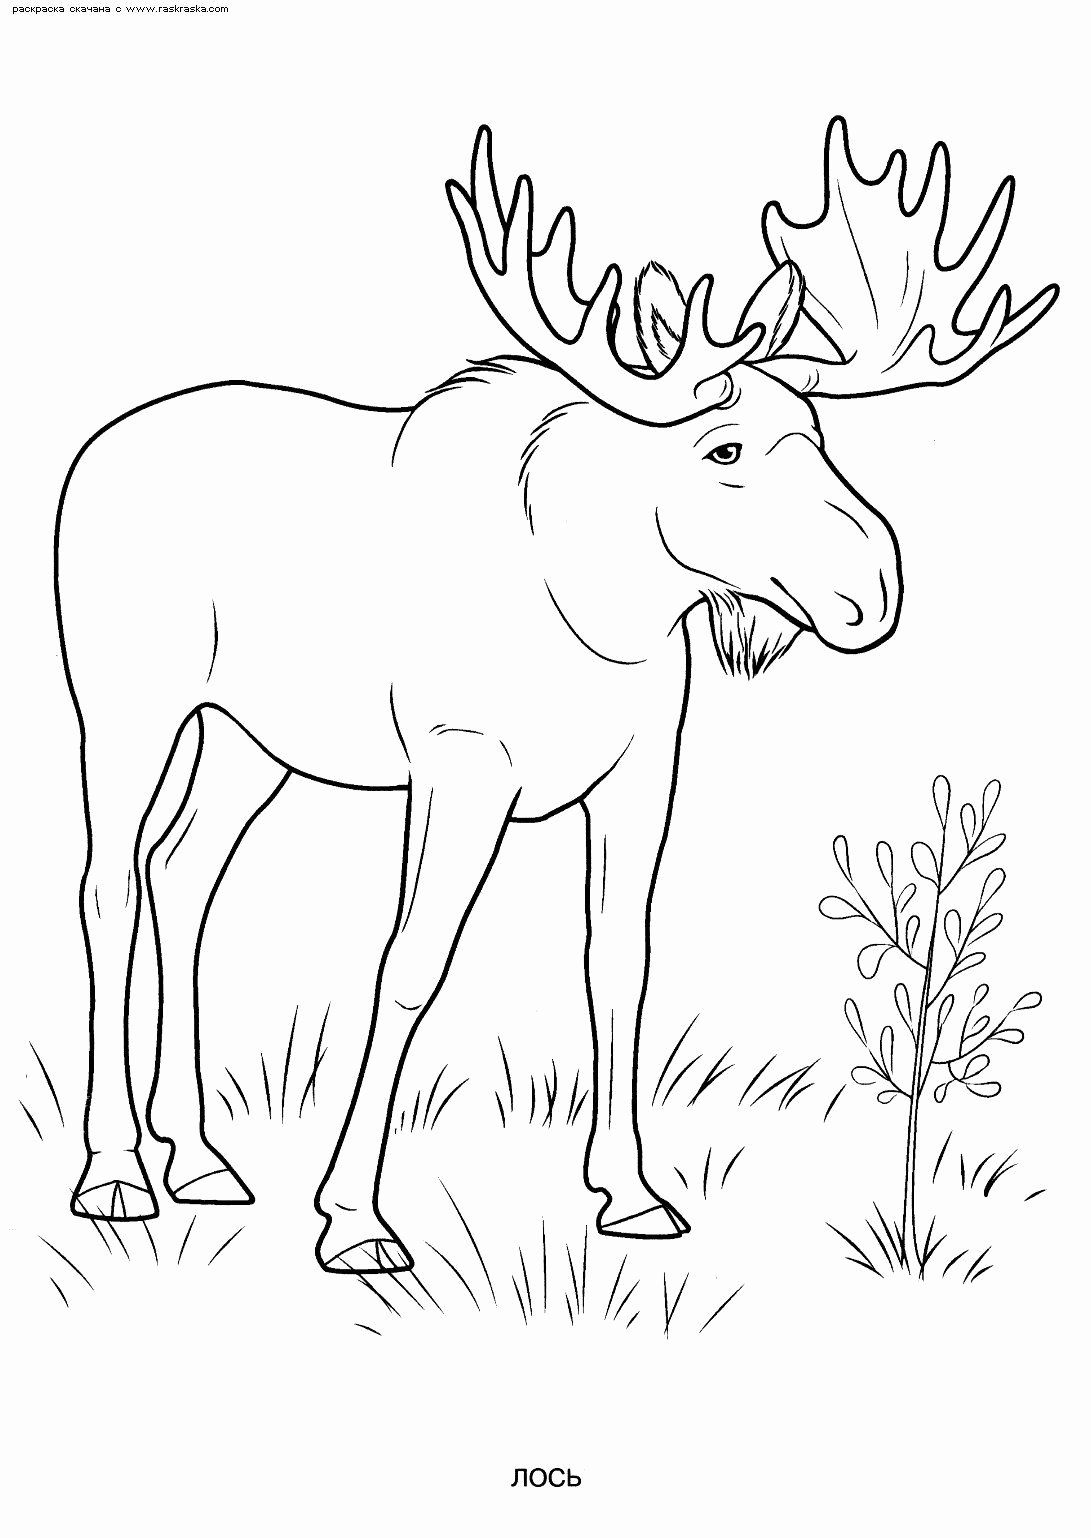 Coloring Activities For 7 Year Old Elegant D D N Dºn D N Dºd D D Dºd Dµ D D D D D Nˆd D Dµ D D D D Animal Coloring Pages Animal Coloring Books Coloring Books [ 1538 x 1091 Pixel ]